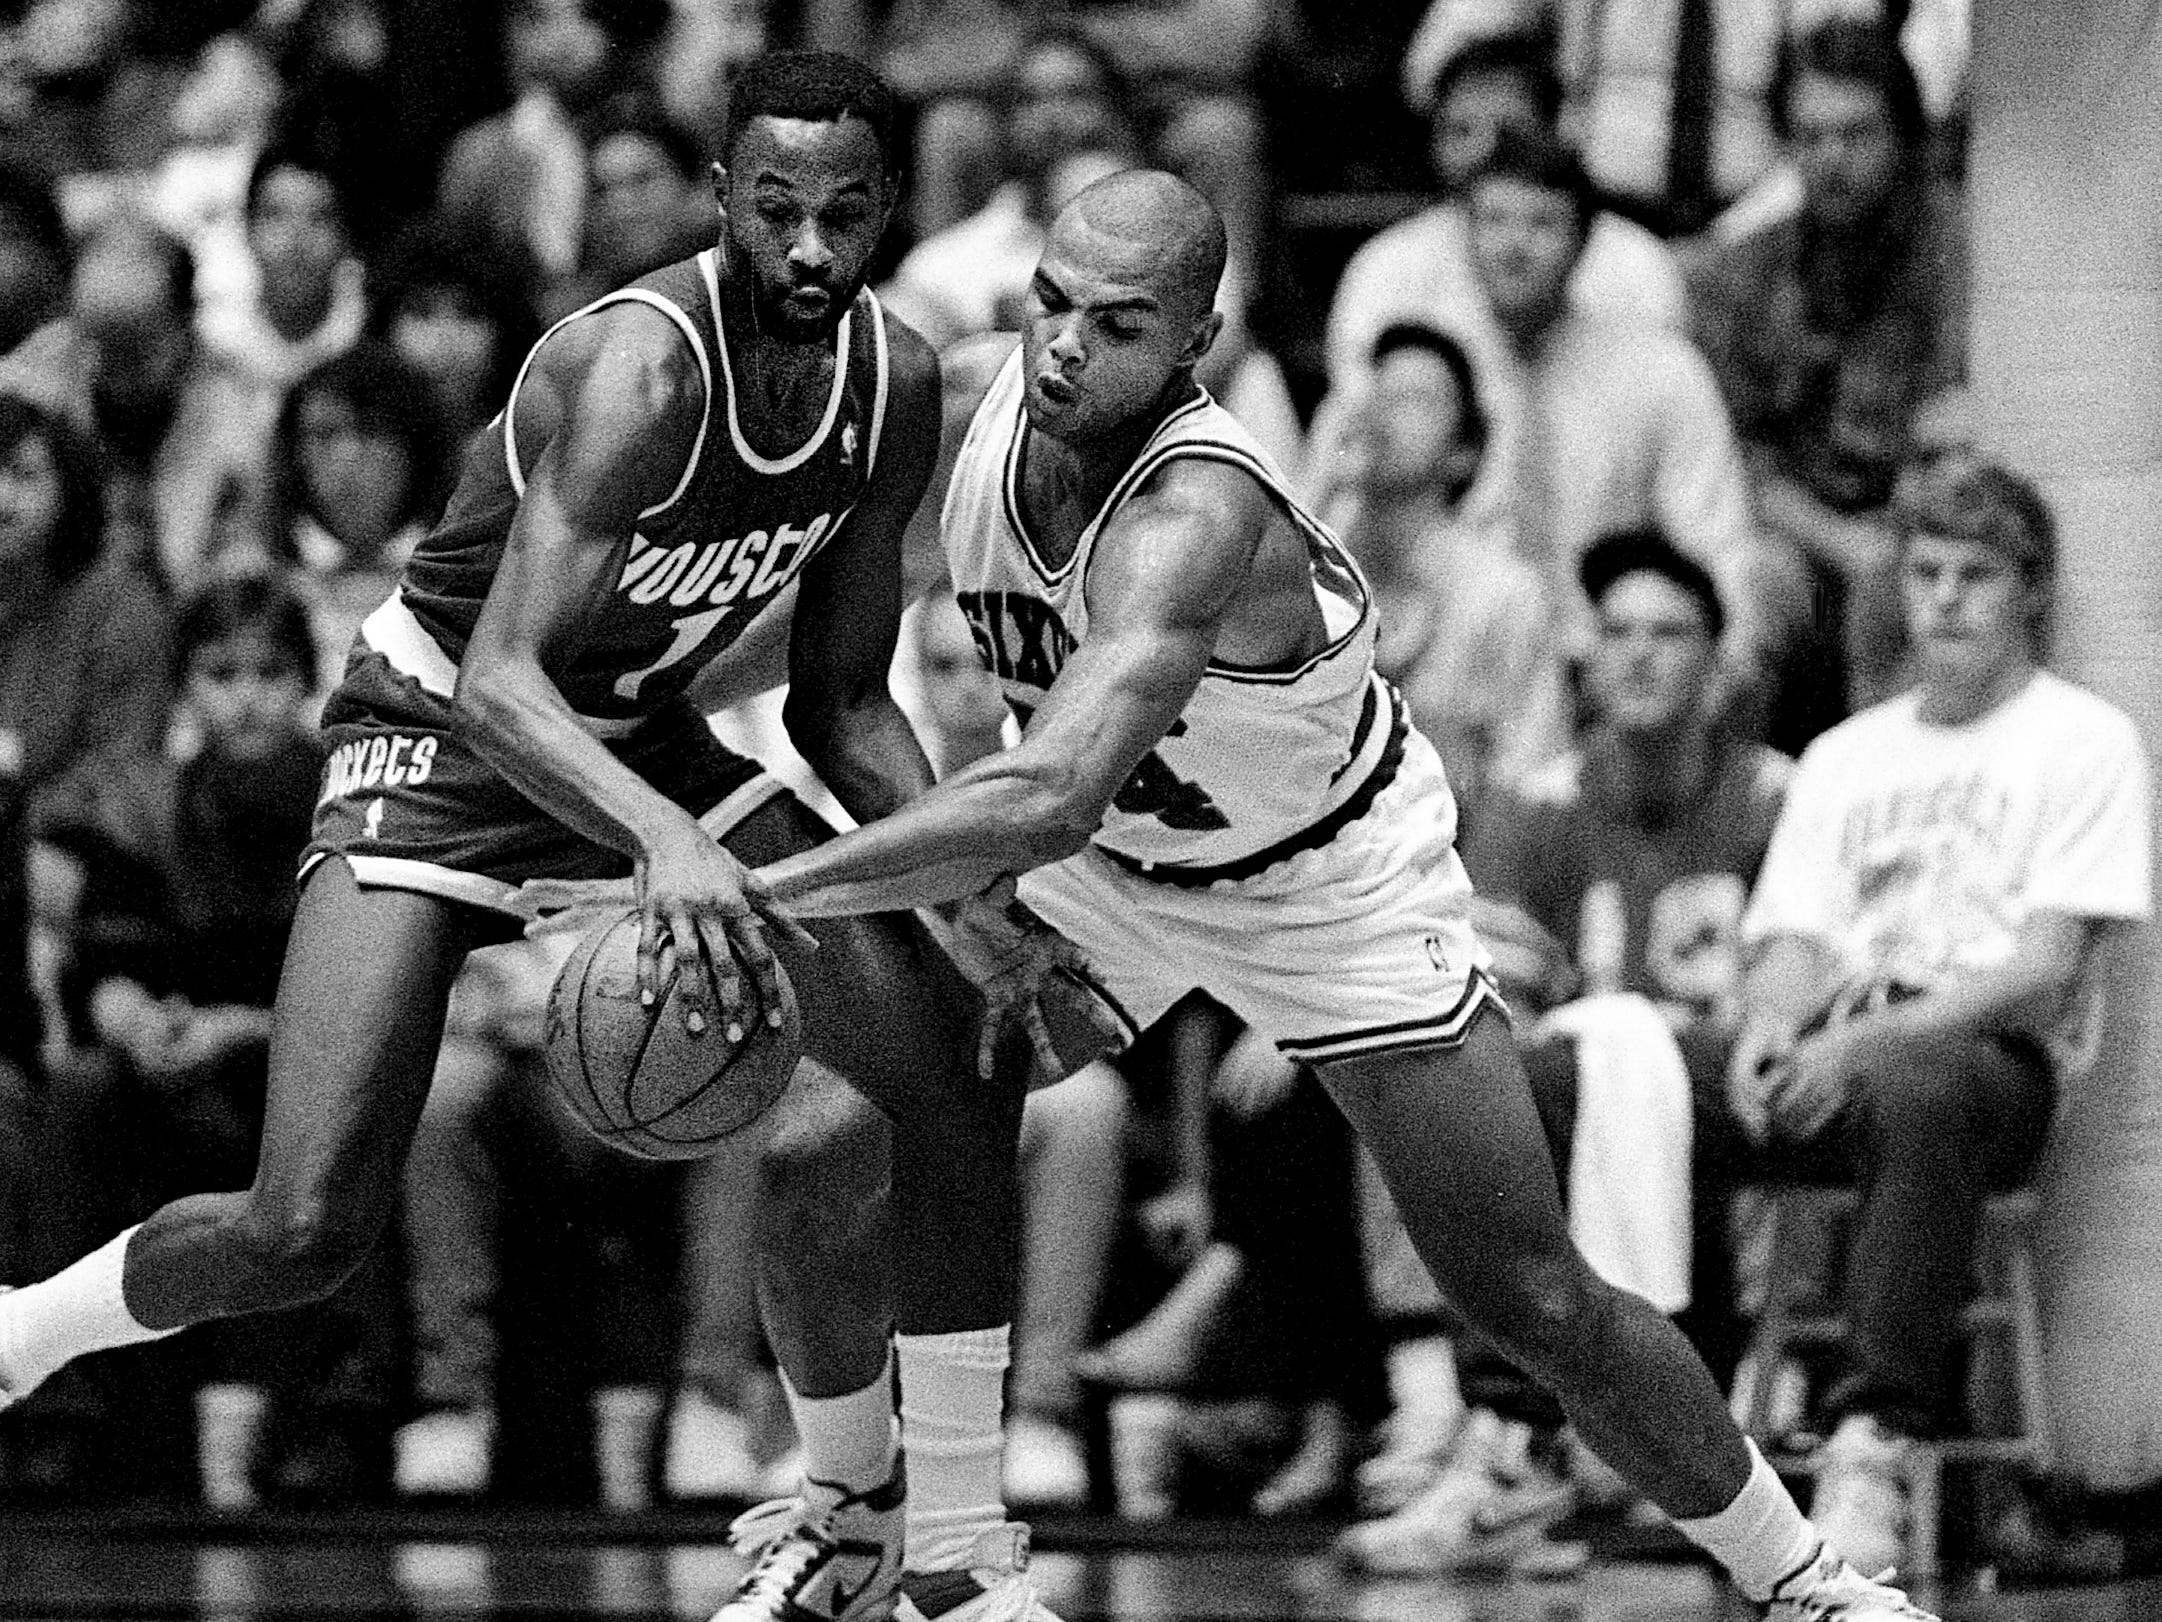 Philadelphia 76ers standout Charles Barkley, right, pesters Houston Rockets' Buck Johnson during their exhibition game before 5,347 NBA fans at Vanderbilt's Memorial Gym Oct. 27, 1988. Philadelphia staged a fourth quarter rally for a 123-118 win and Barkley had game high total of 24 points.